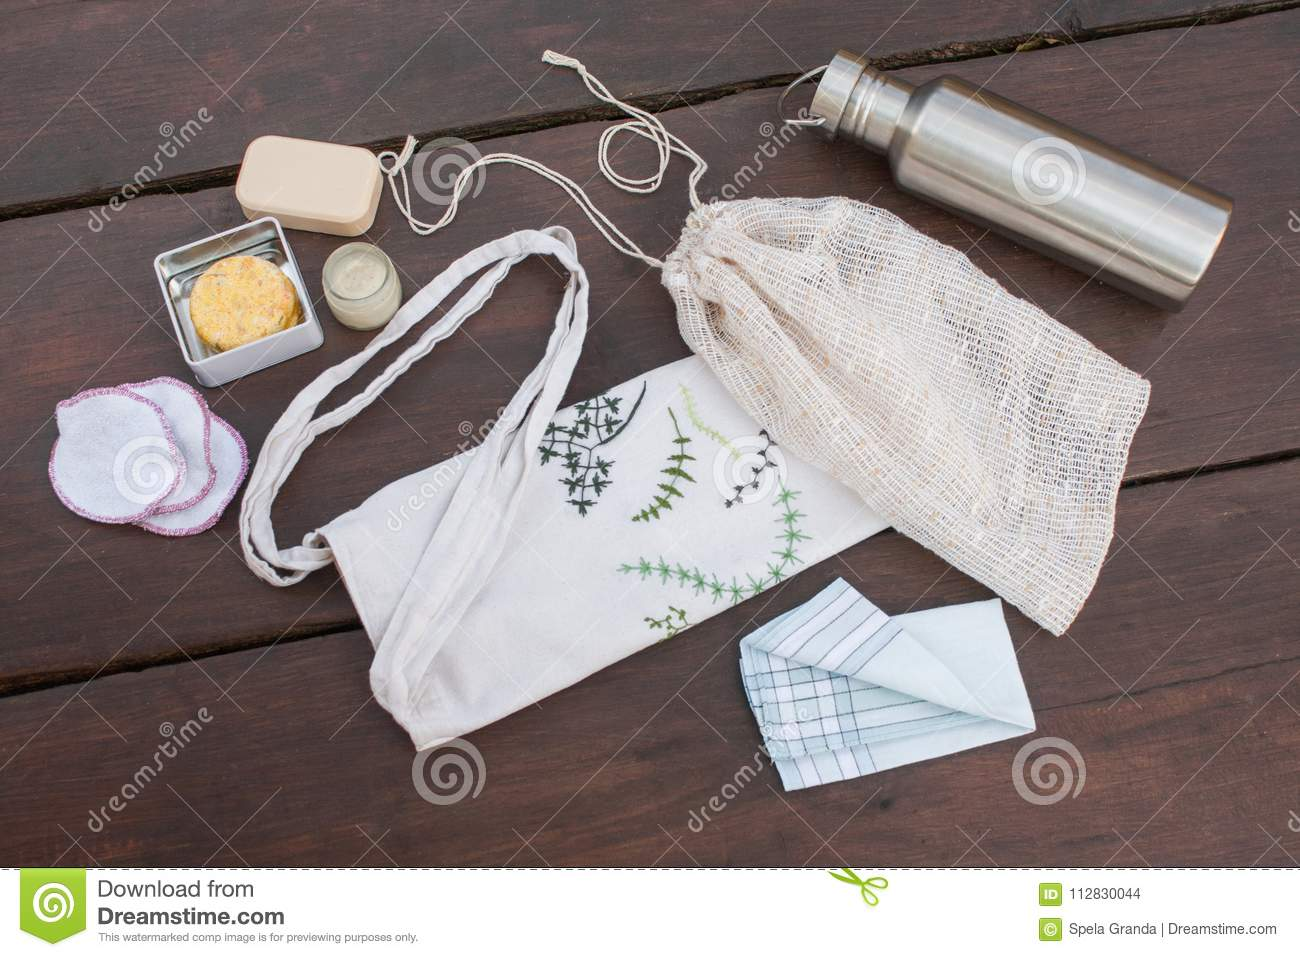 Items necessary for zero waste/less waste shopping and living